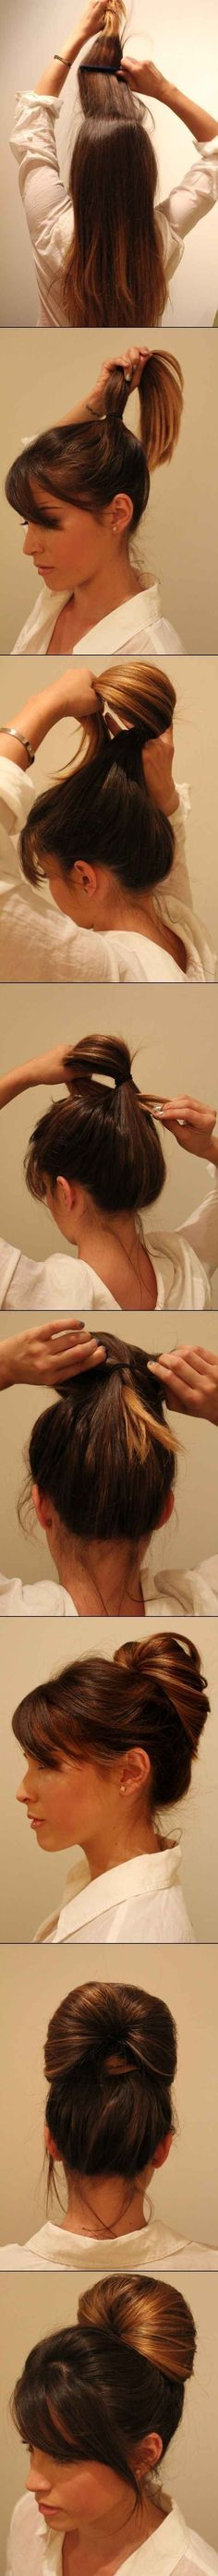 18 Easy Go Lazy Girl Hairstyles That Make You Look Awesome